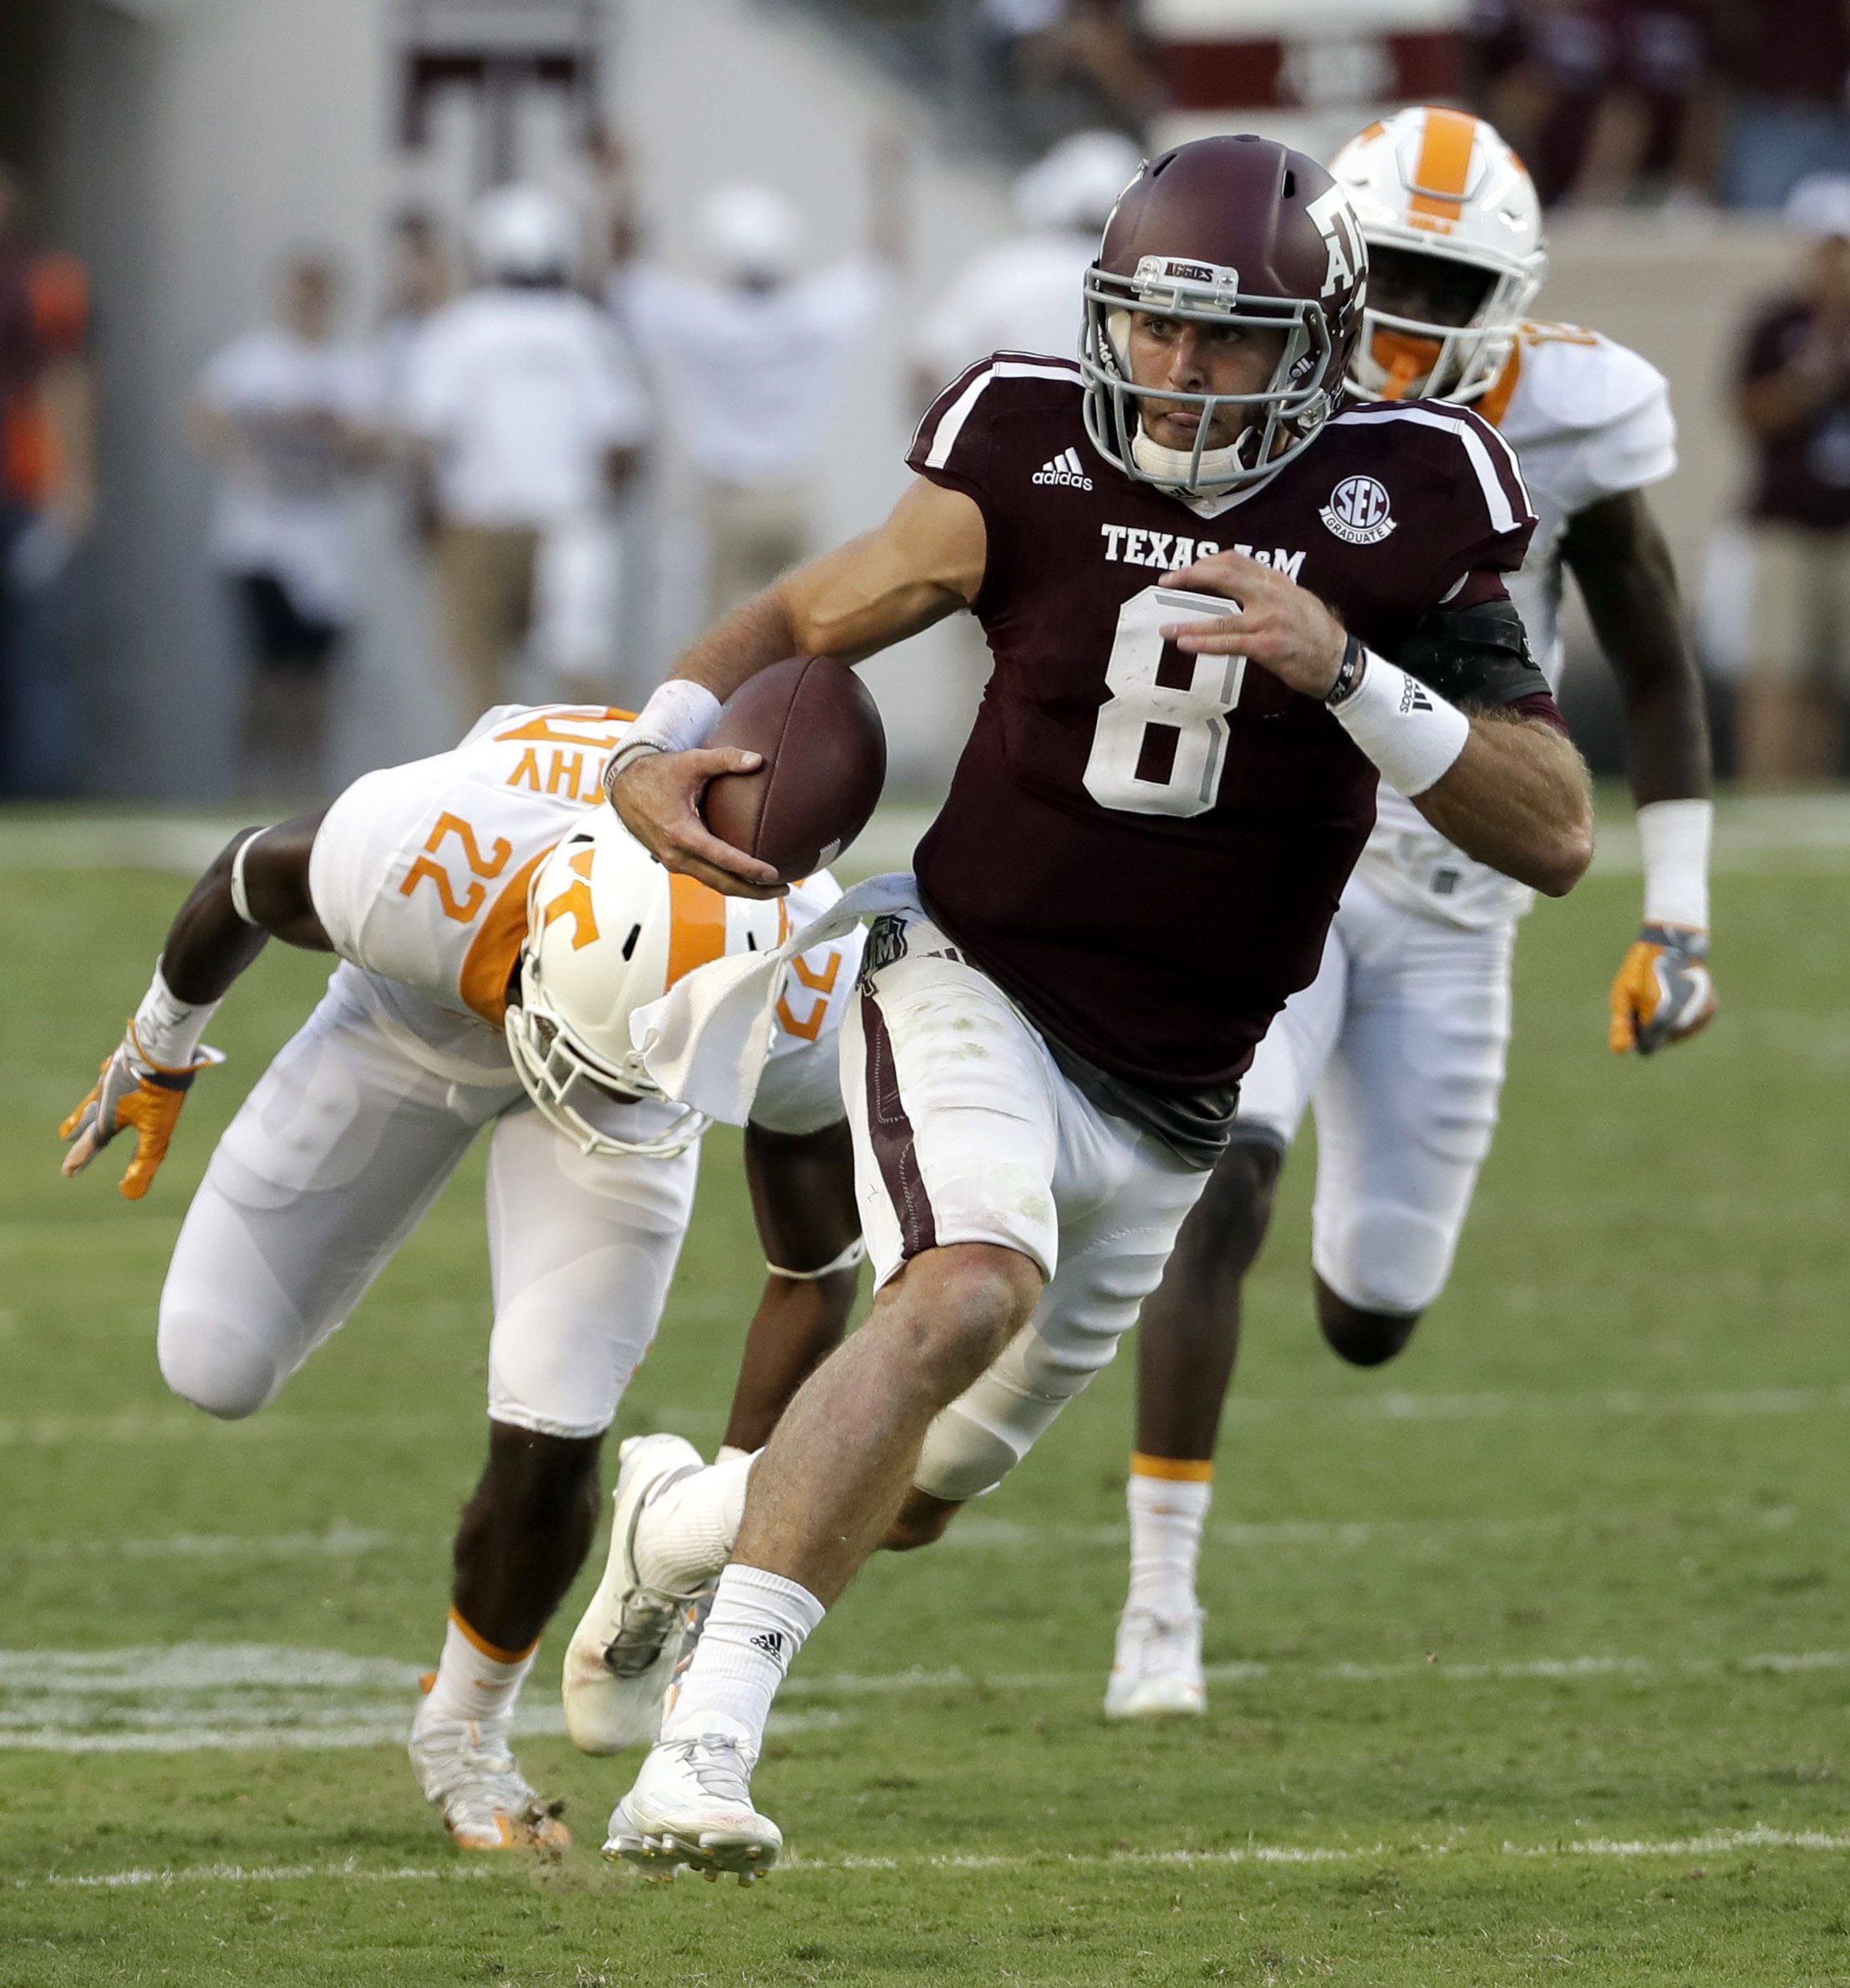 FILE - In this Oct. 8, 2016, file photo, Texas A&M quarterback Trevor Knight (8) rushes for a touchdown past Tennessee defensive back Micah Abernathy during the second half of an NCAA college football game in College Station, Texas. The sixth-ranked Aggie